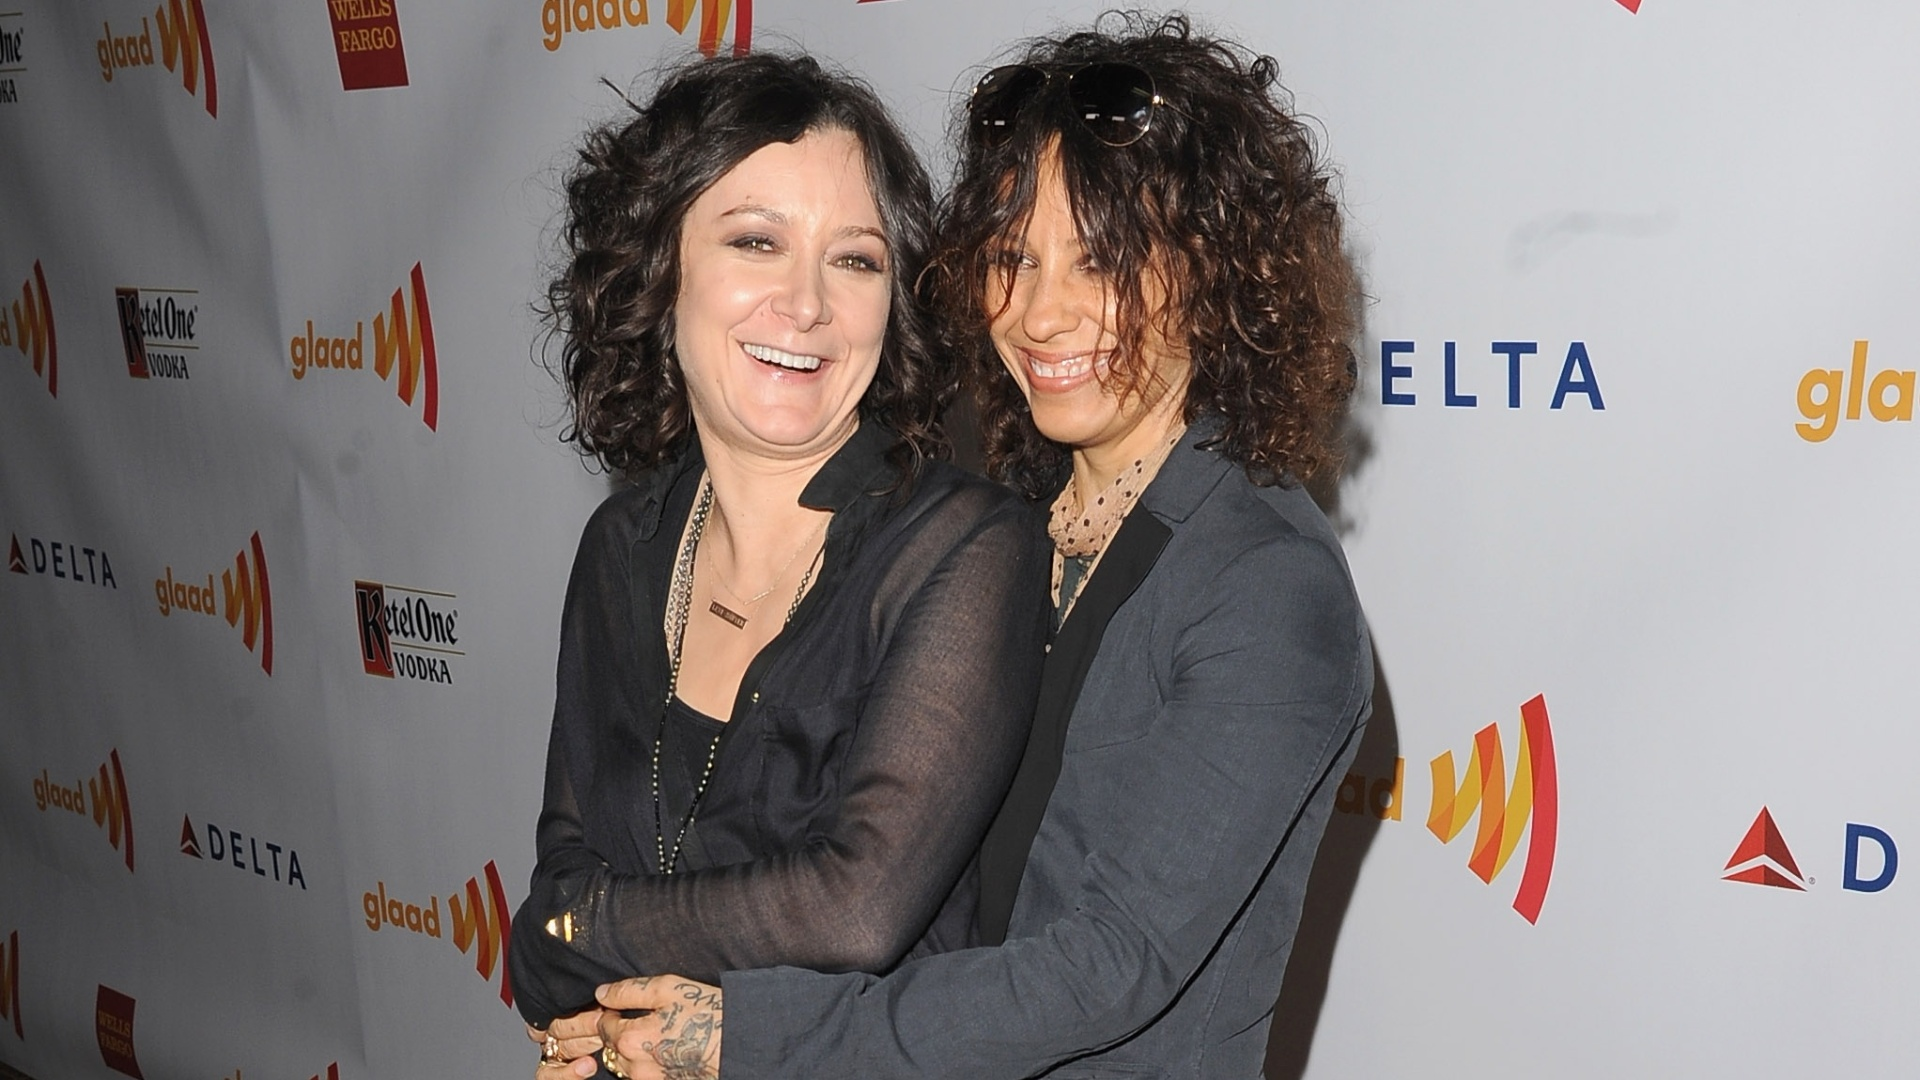 21.abril.2012 - A atriz Sara Gilbert e a cantora Linda Perry no tapete vermelho do 23 GLAAD Awards, em Los Angeles